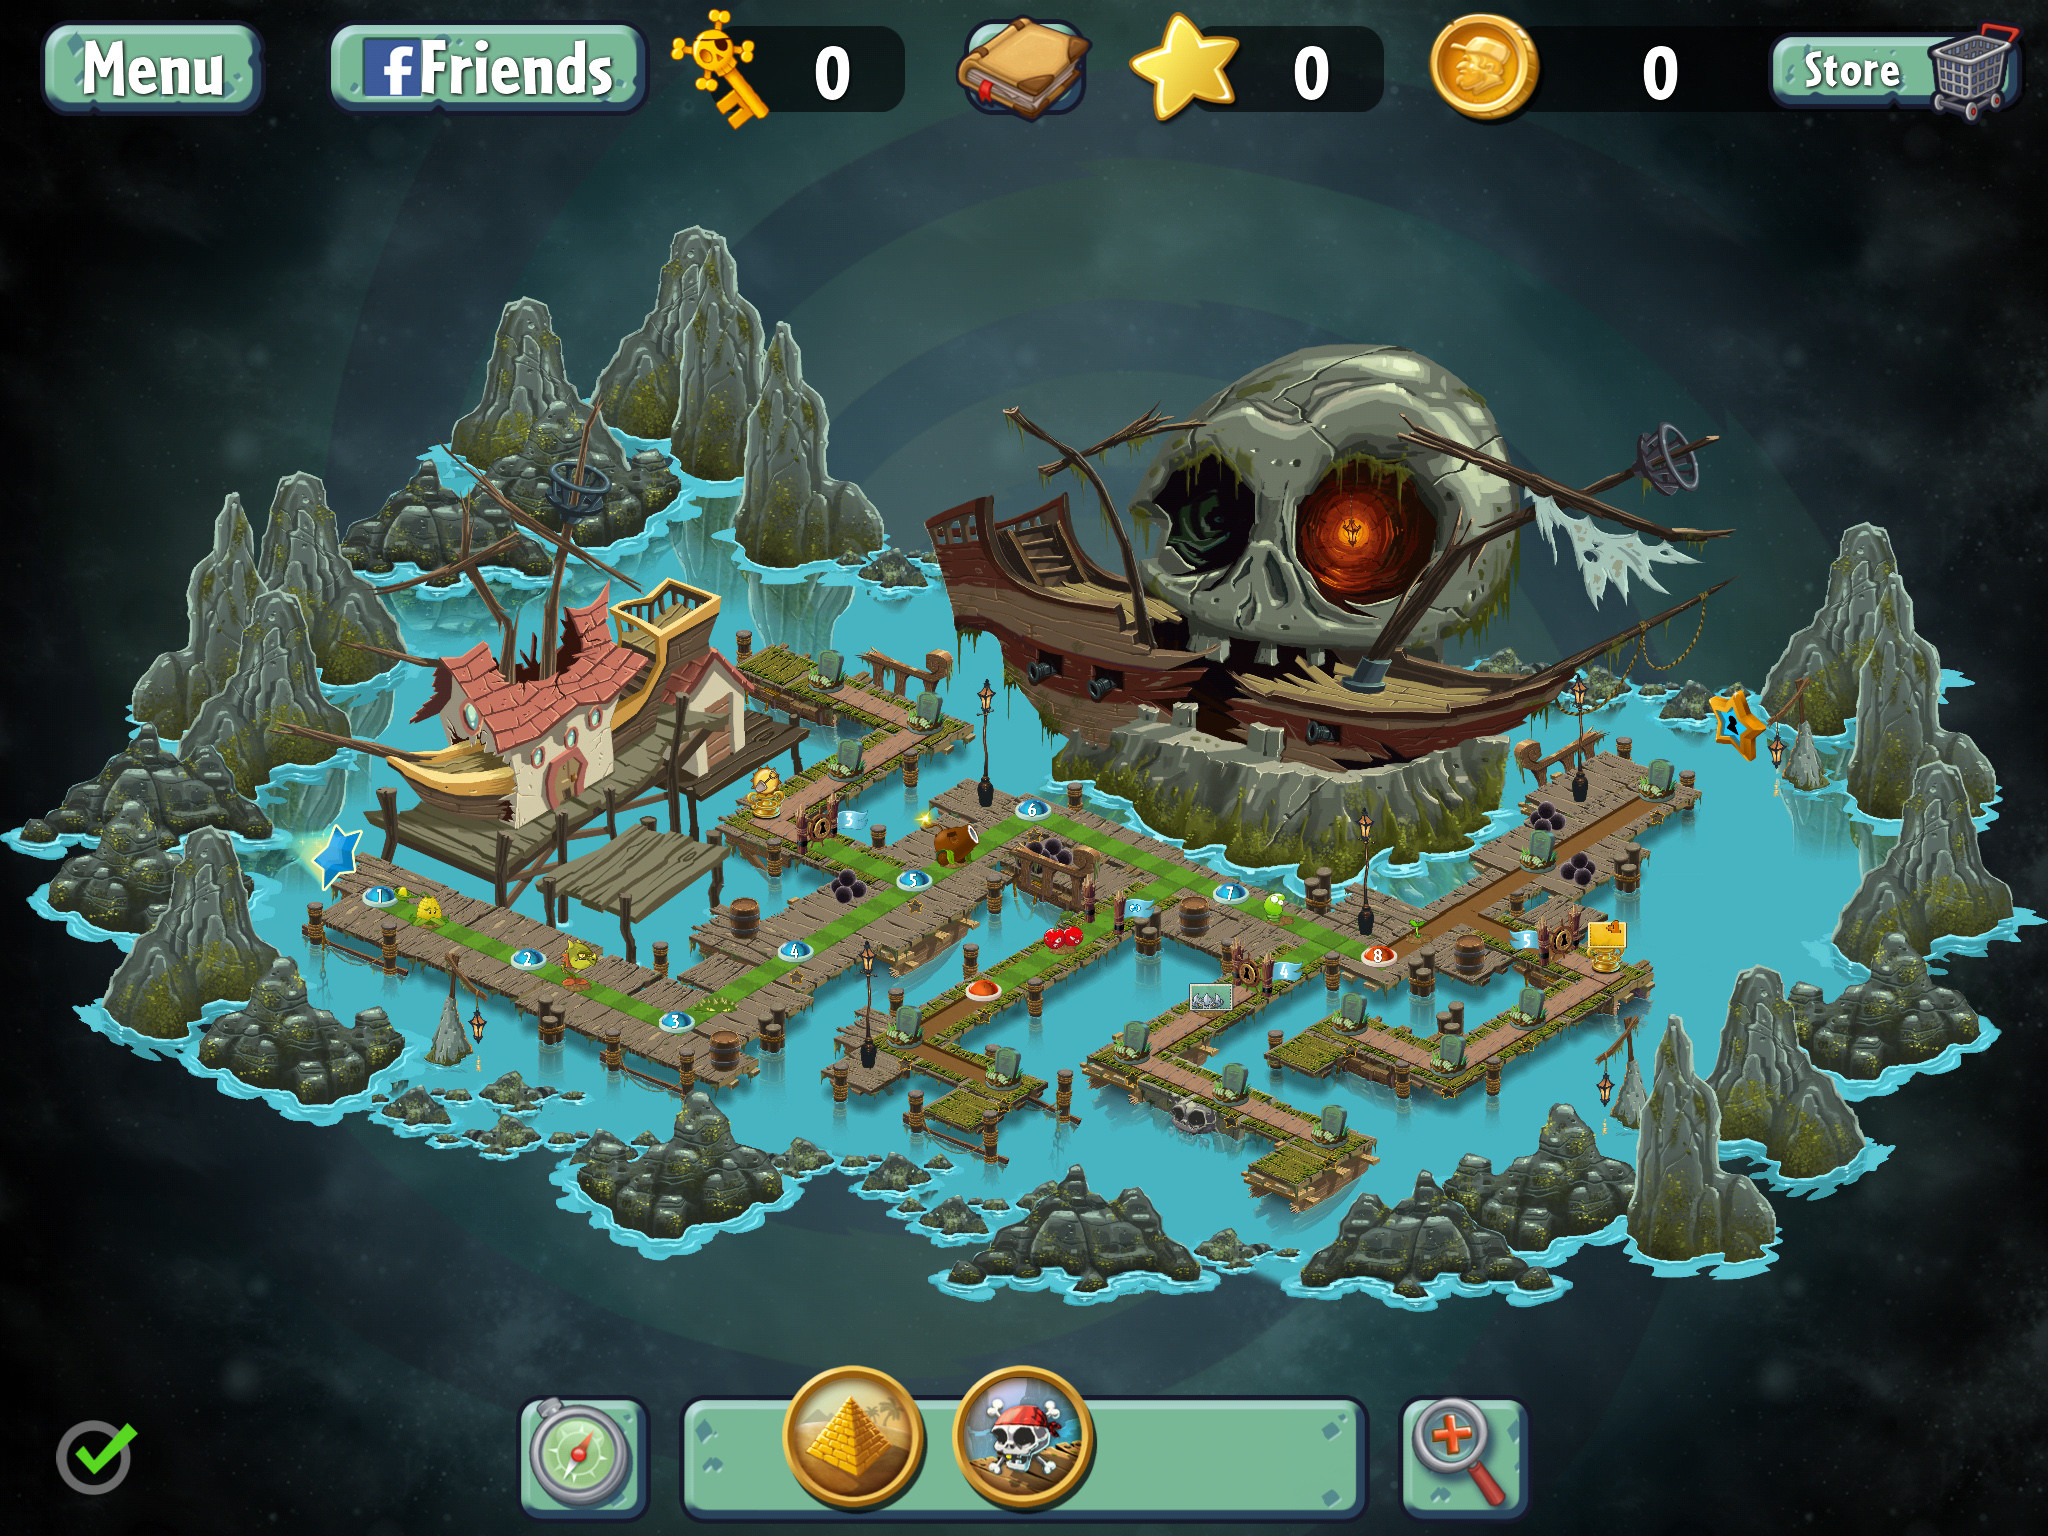 free download plants vs zombies 2 for laptop windows 10